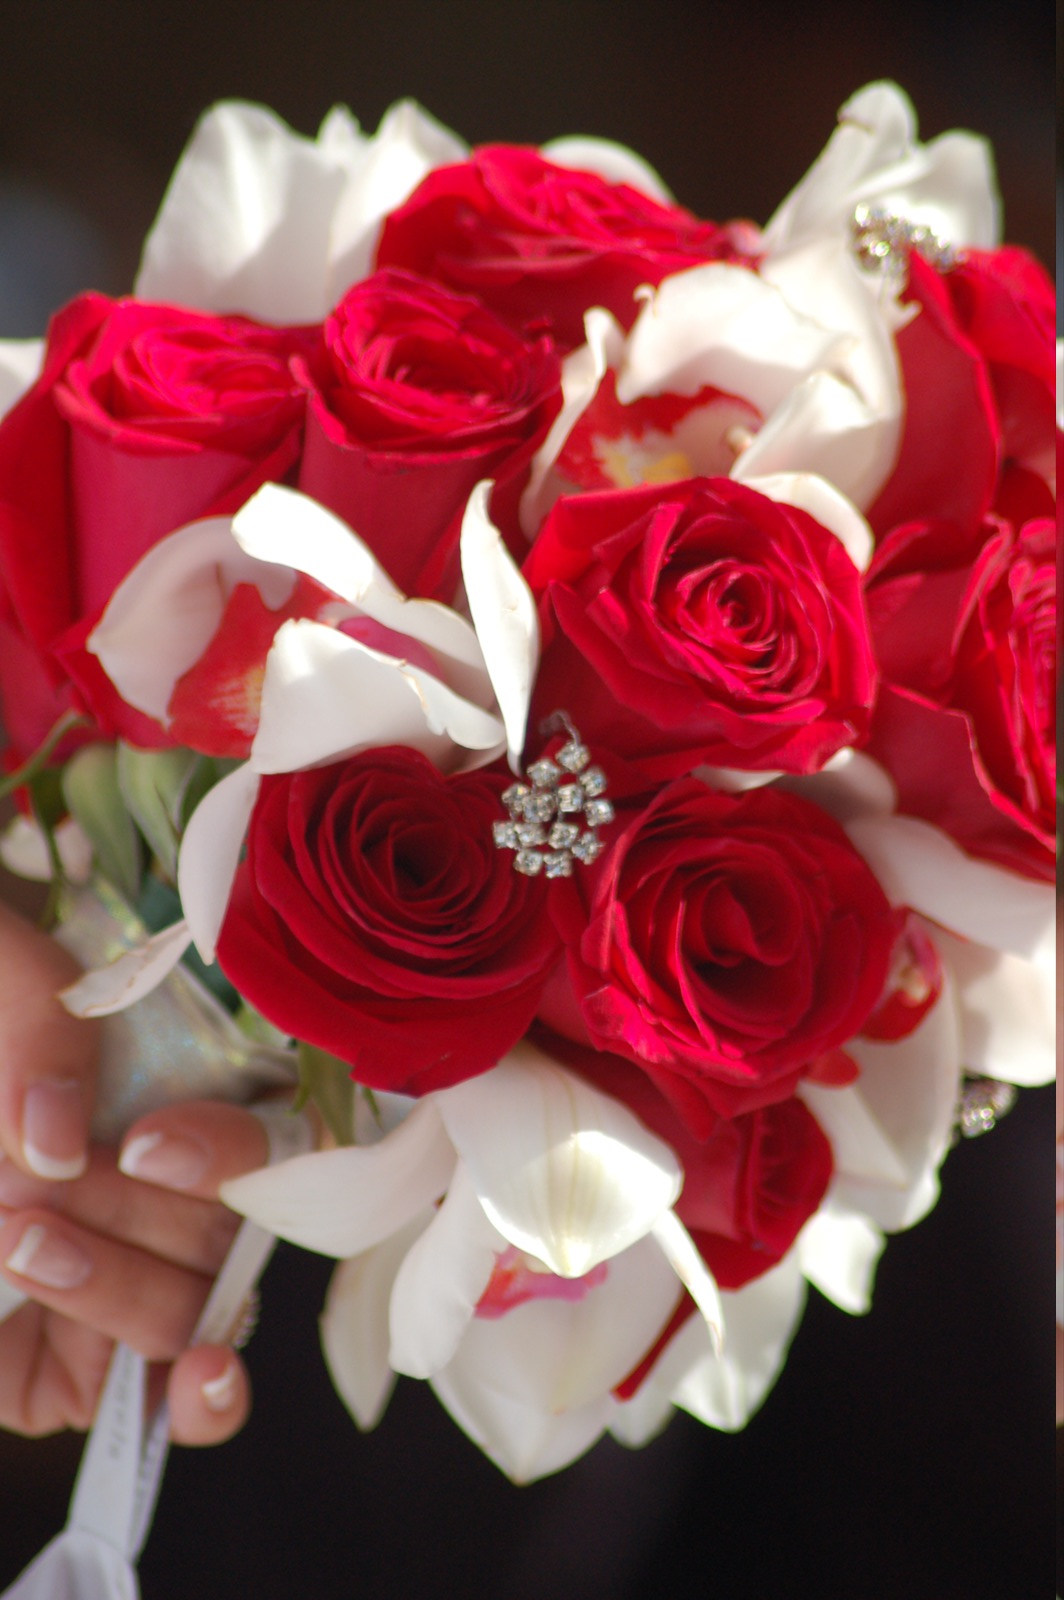 Wedding Flowers Roses | Wedding Flower Design | Wedding Flower